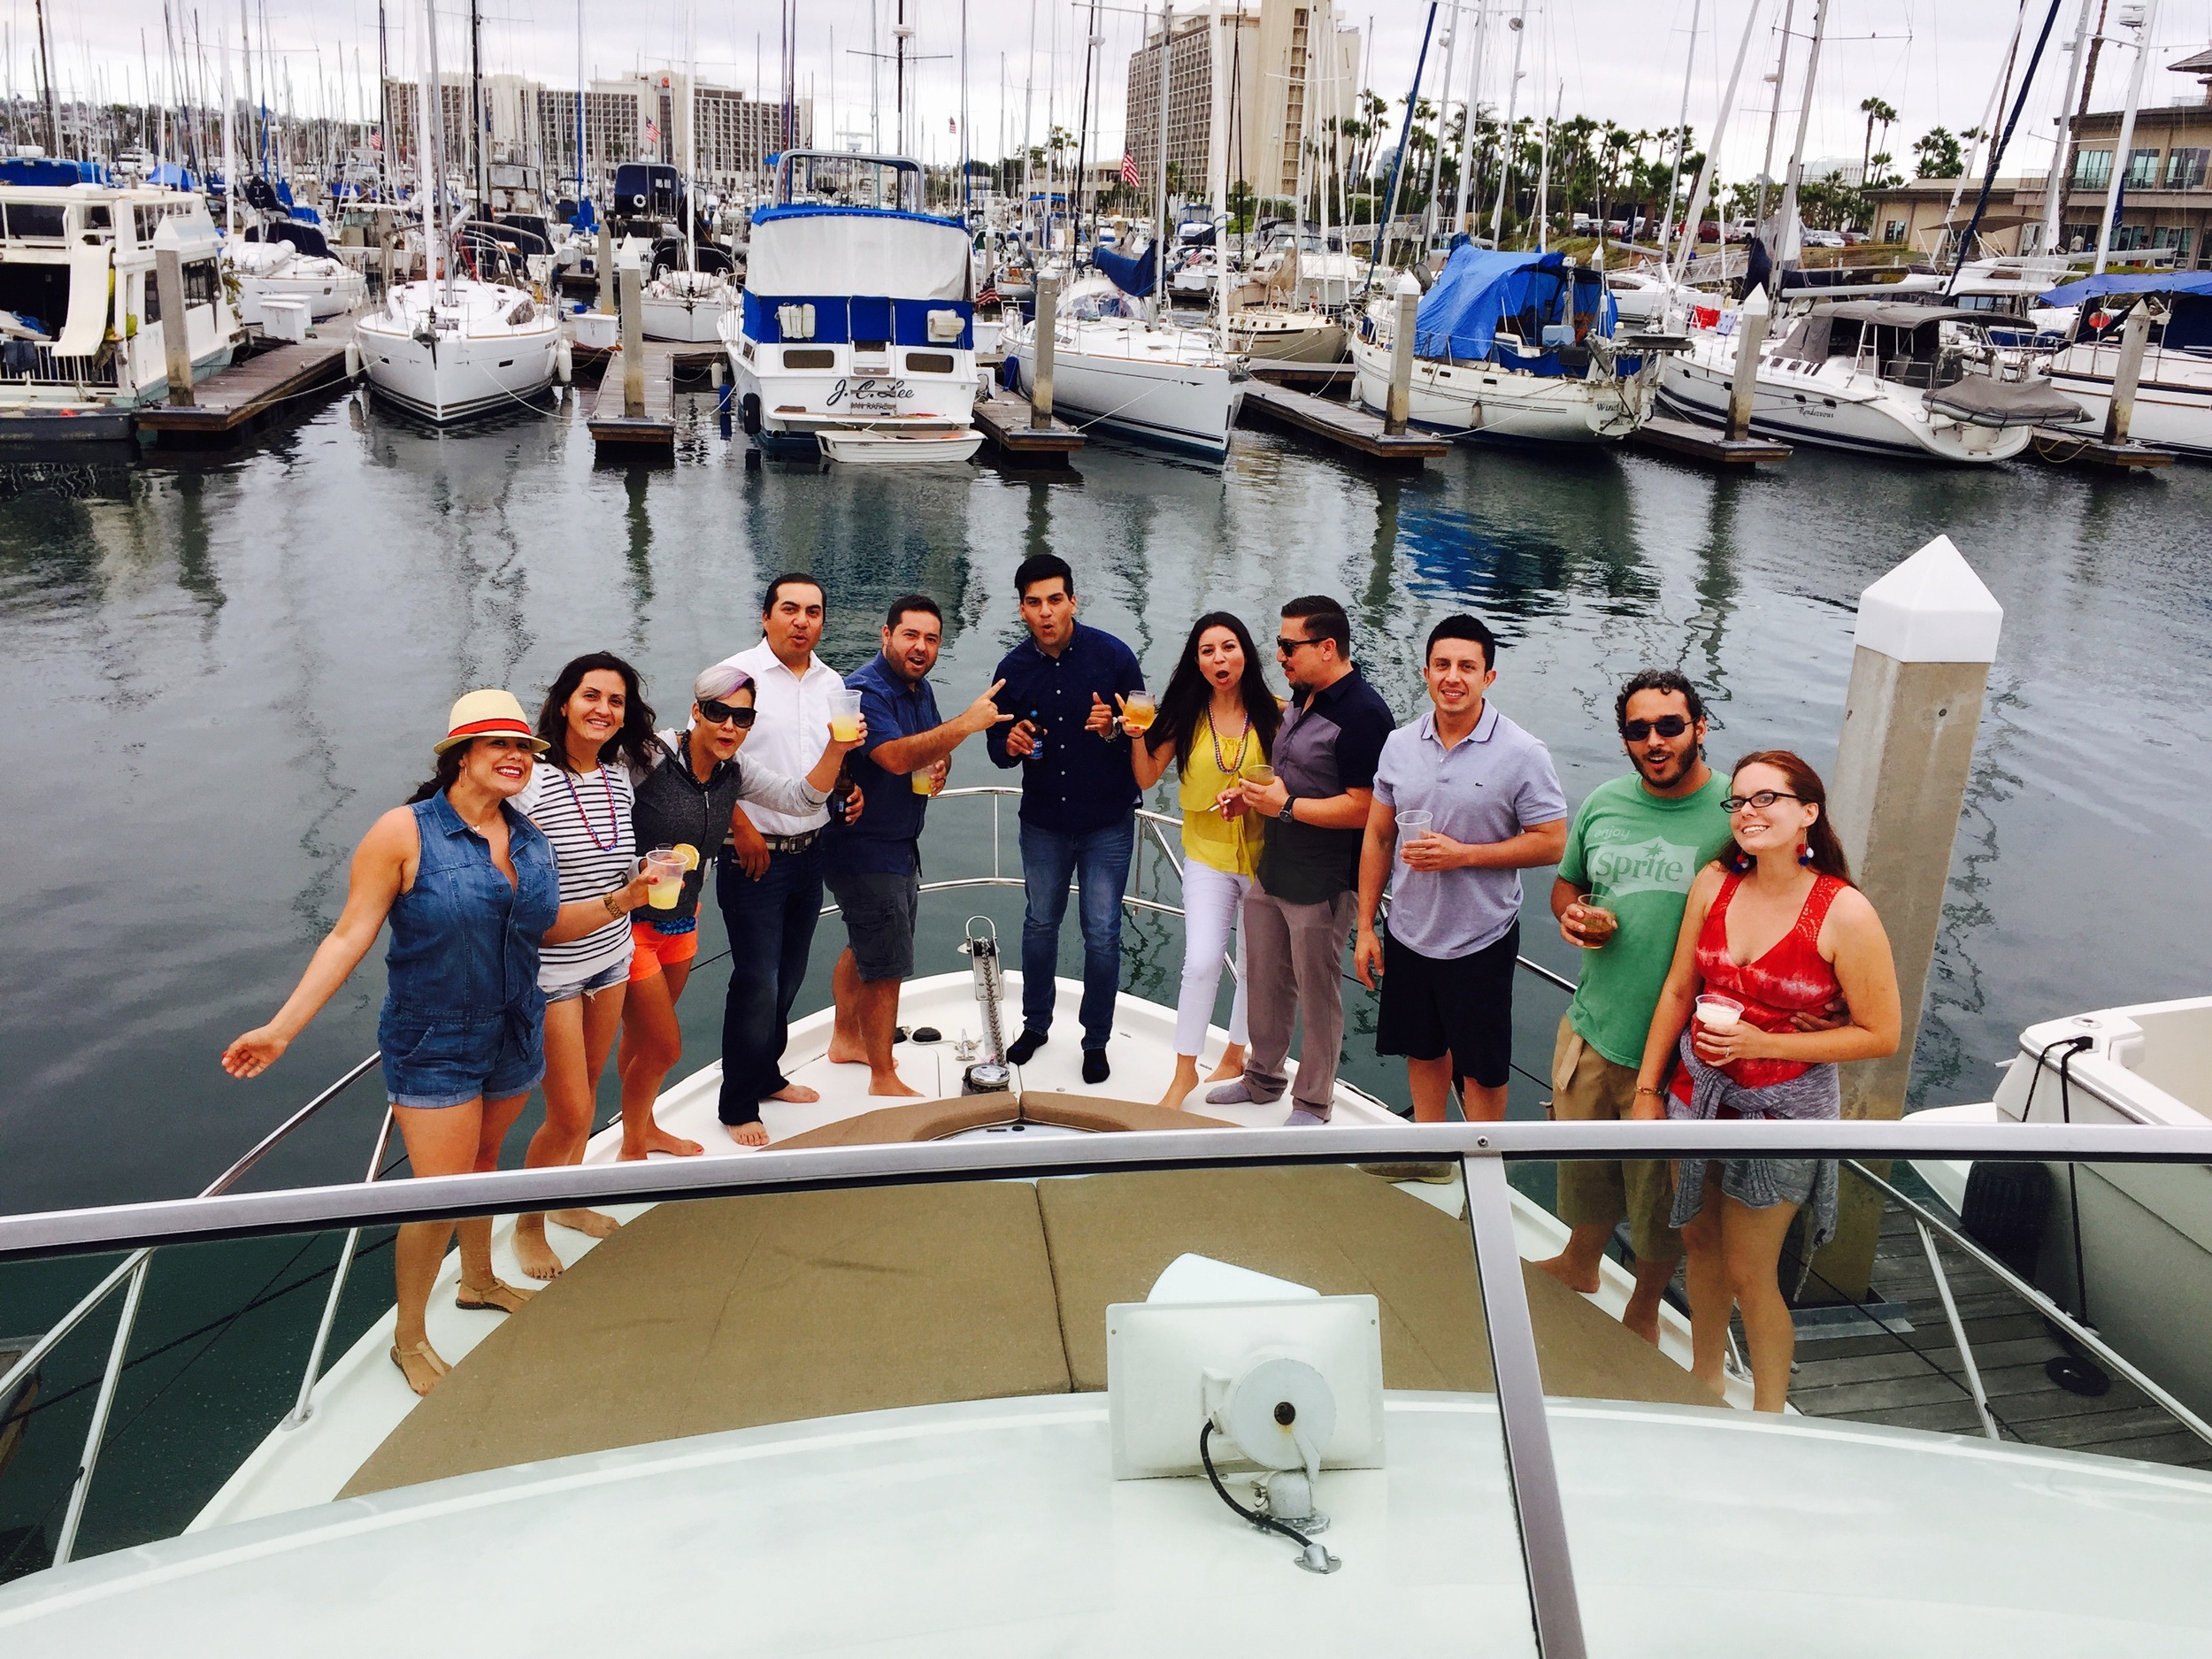 Powerboat charters aboard san diego yacht charters Mai Tai